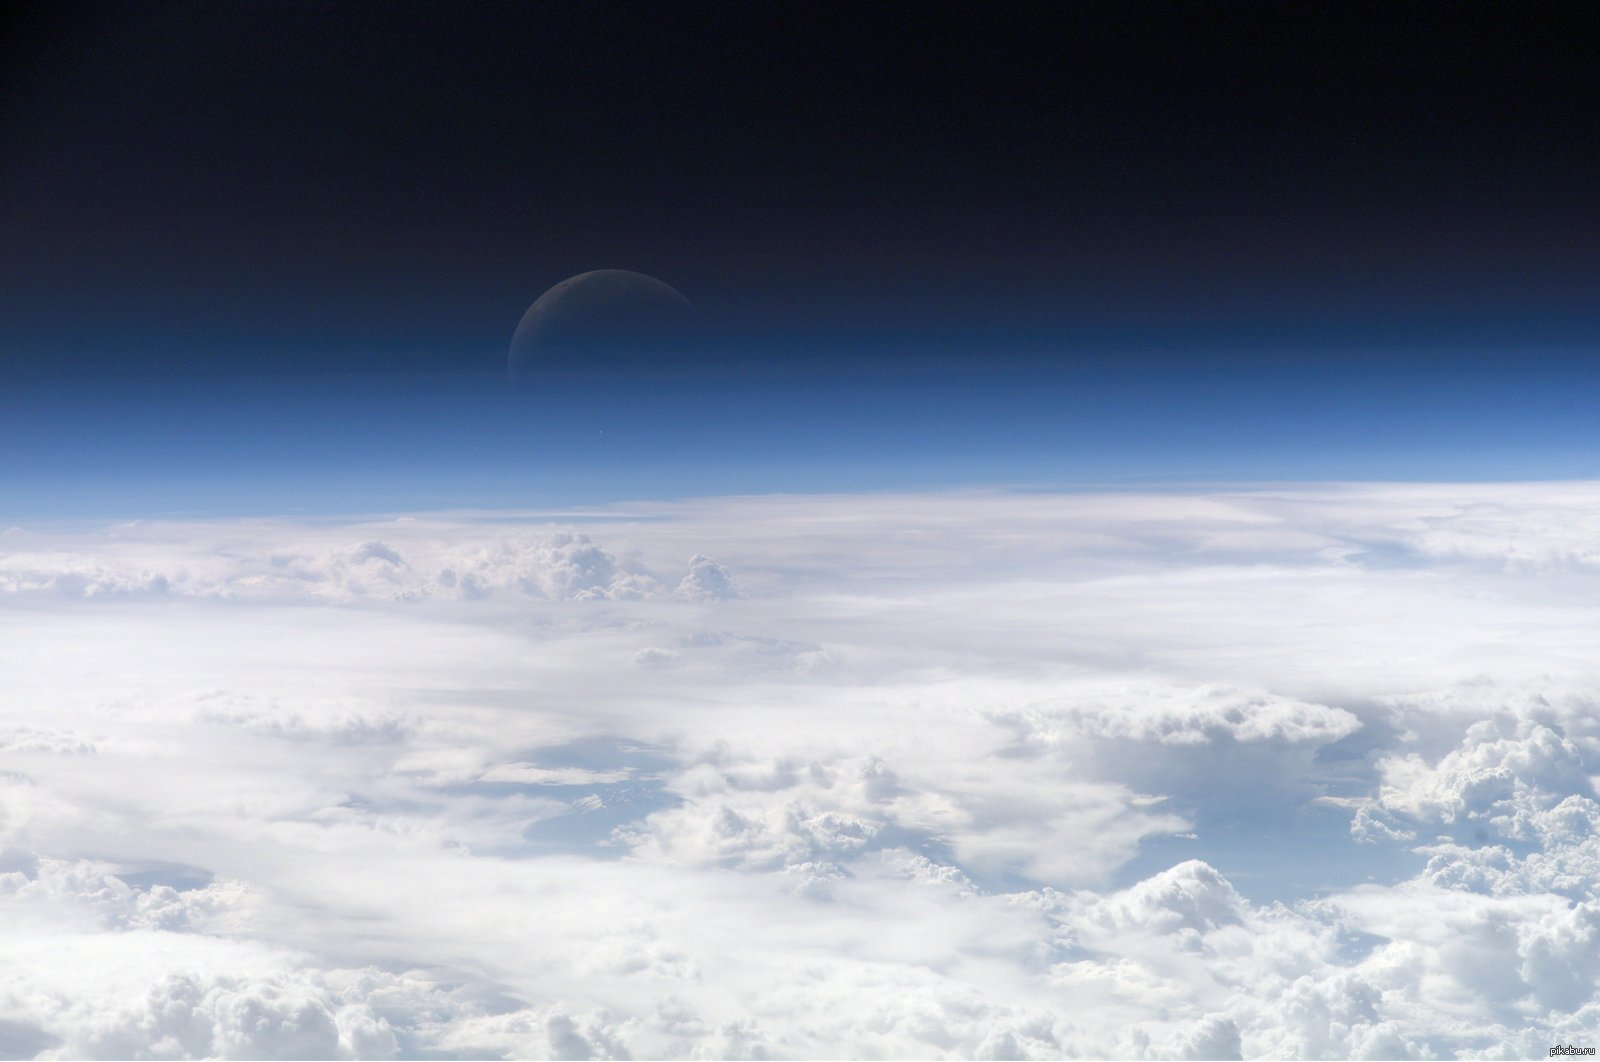 nasa makes clouds - HD 3032×2007